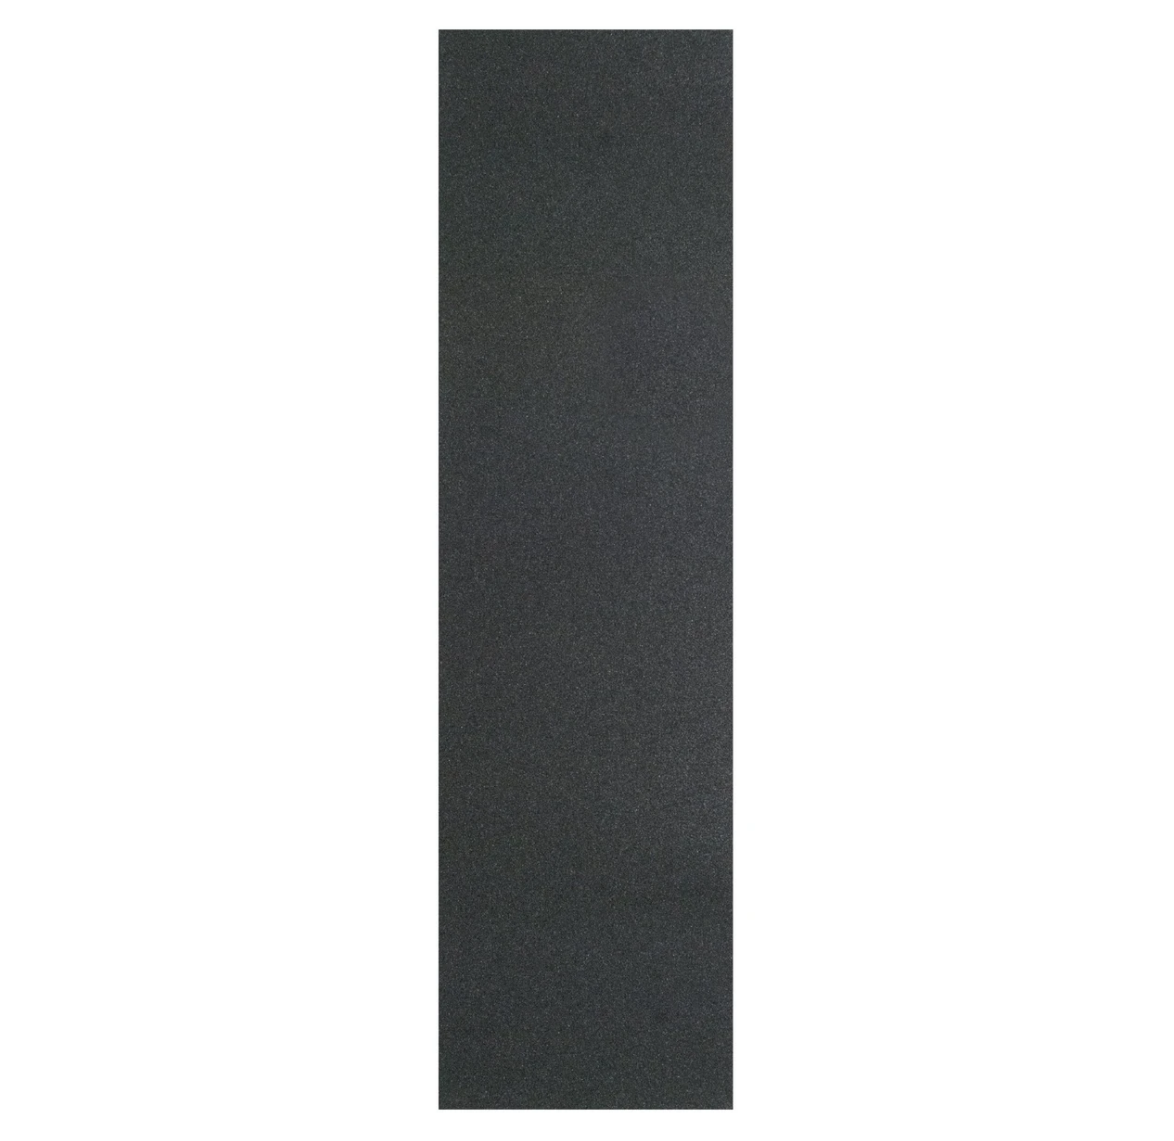 Grizzly Griptape Grizzly Grippier Griptape